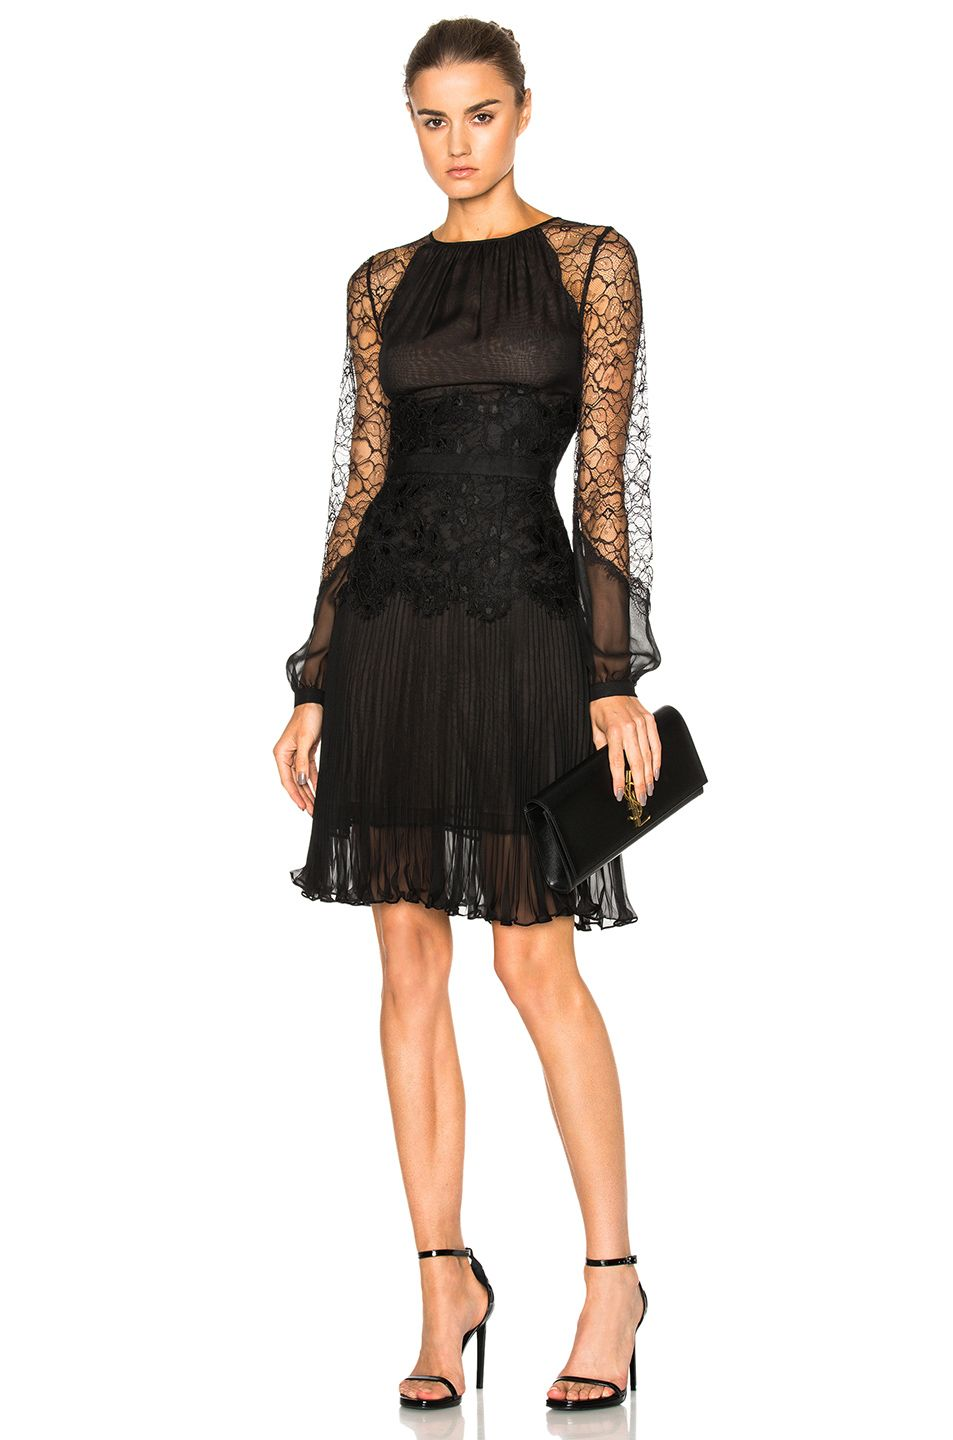 Oscar De La Renta Lace Dress In Black Fwrd Vestido De